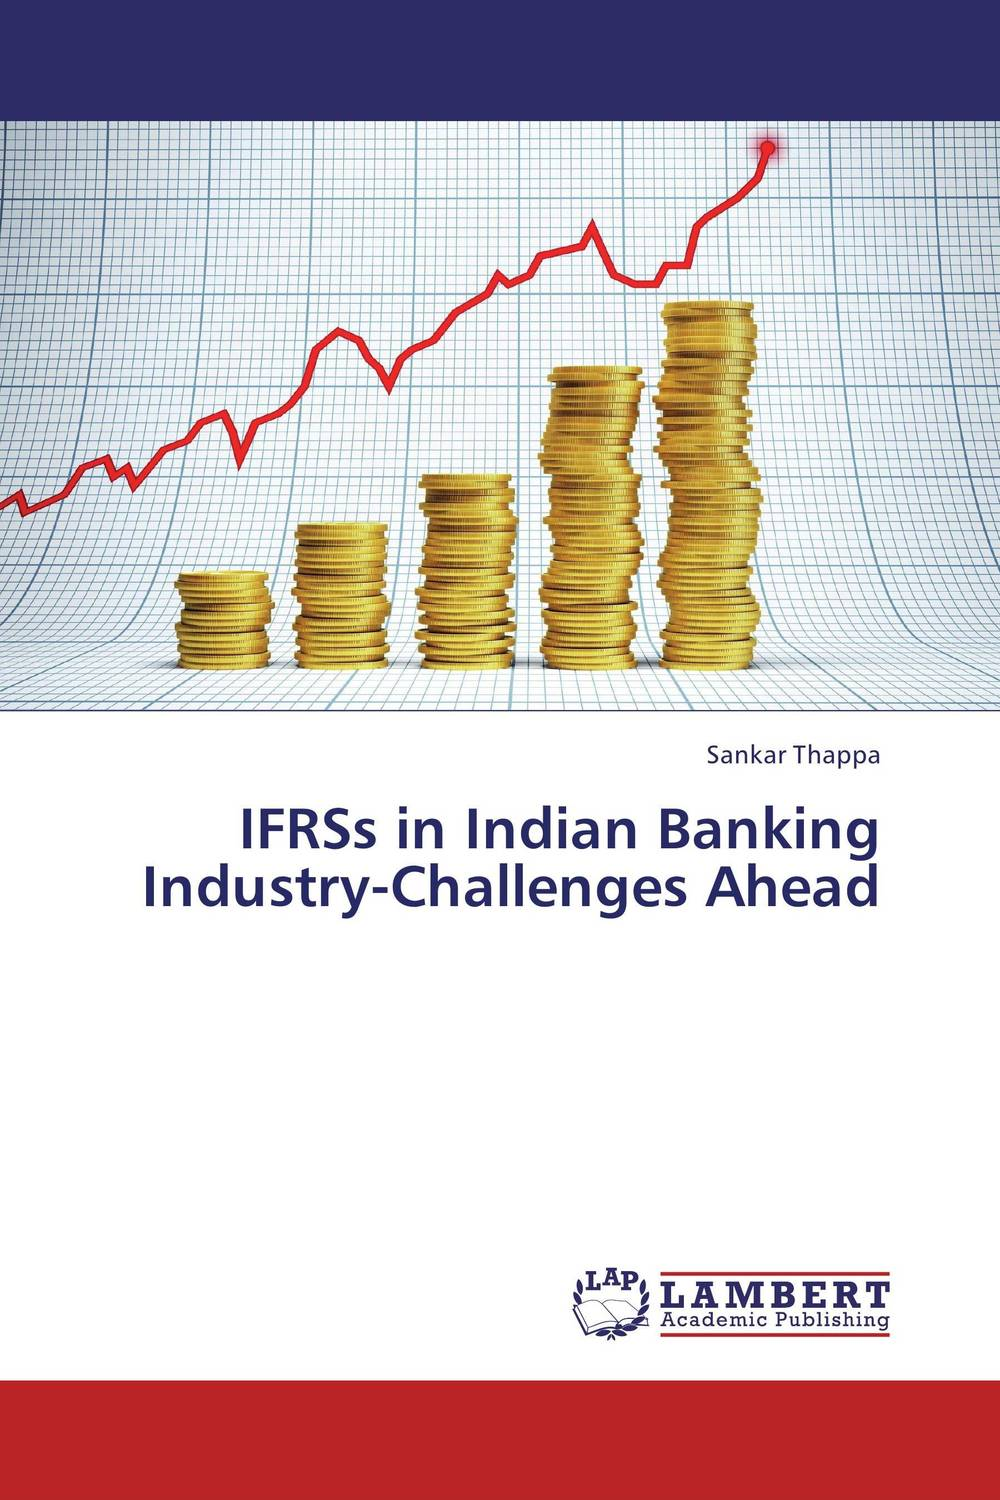 IFRSs in Indian Banking Industry-Challenges Ahead turbolader turbo cartridge turbo core chra tf035 49135 05610 49135 05620 49135 05670 49135 05671 for bmw 120d 320d e87 e90 e91